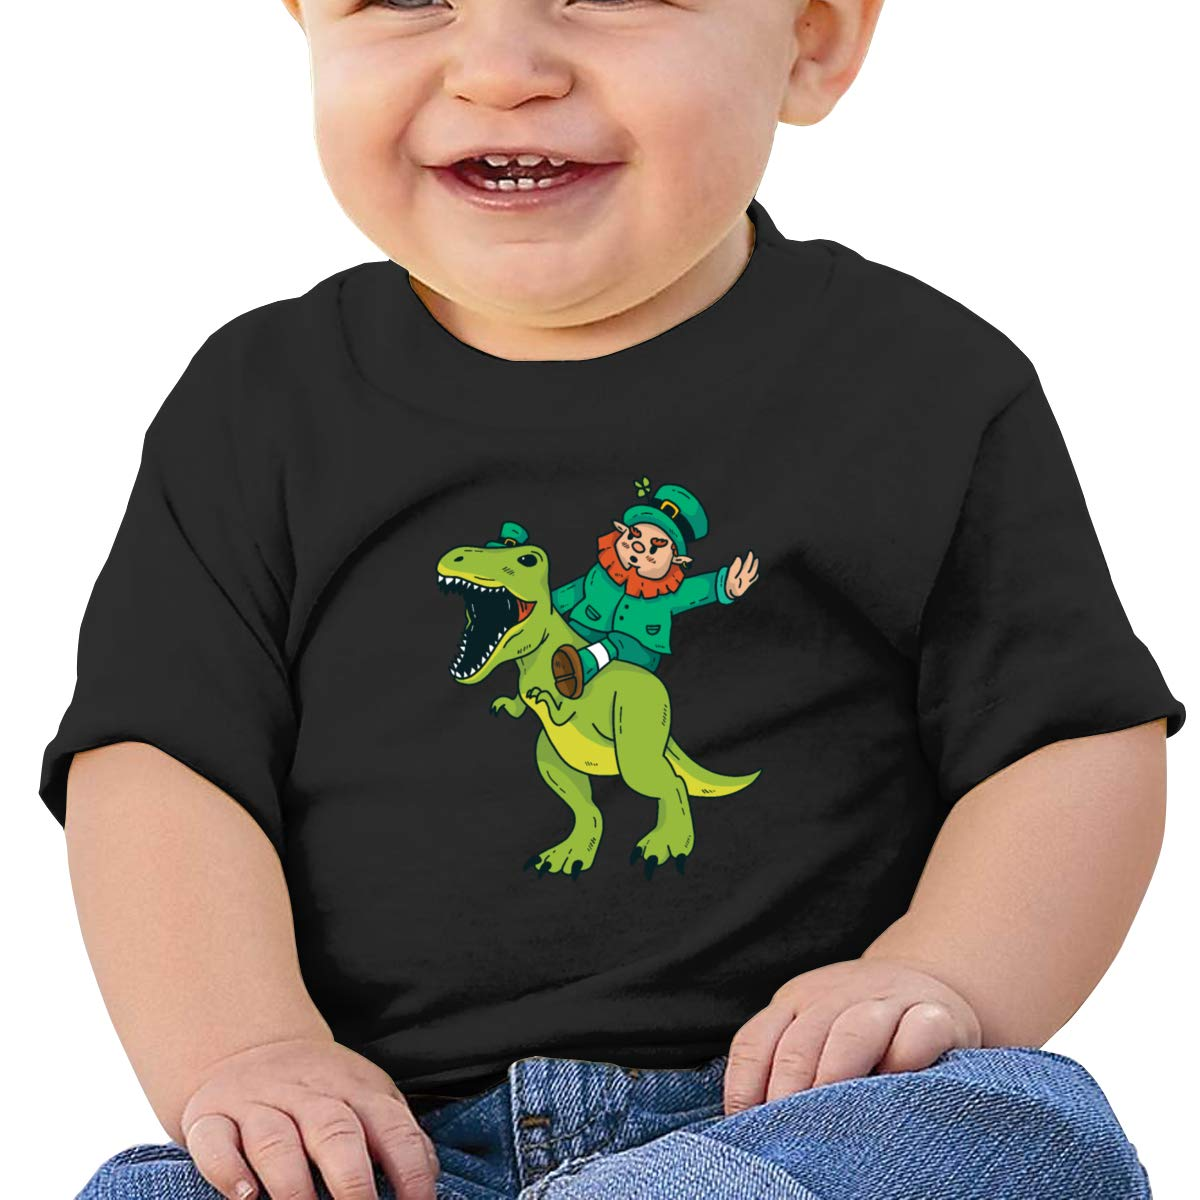 Patricks Day Dinosaur Short Sleeve Shirt Baby Girl Qiop Nee St